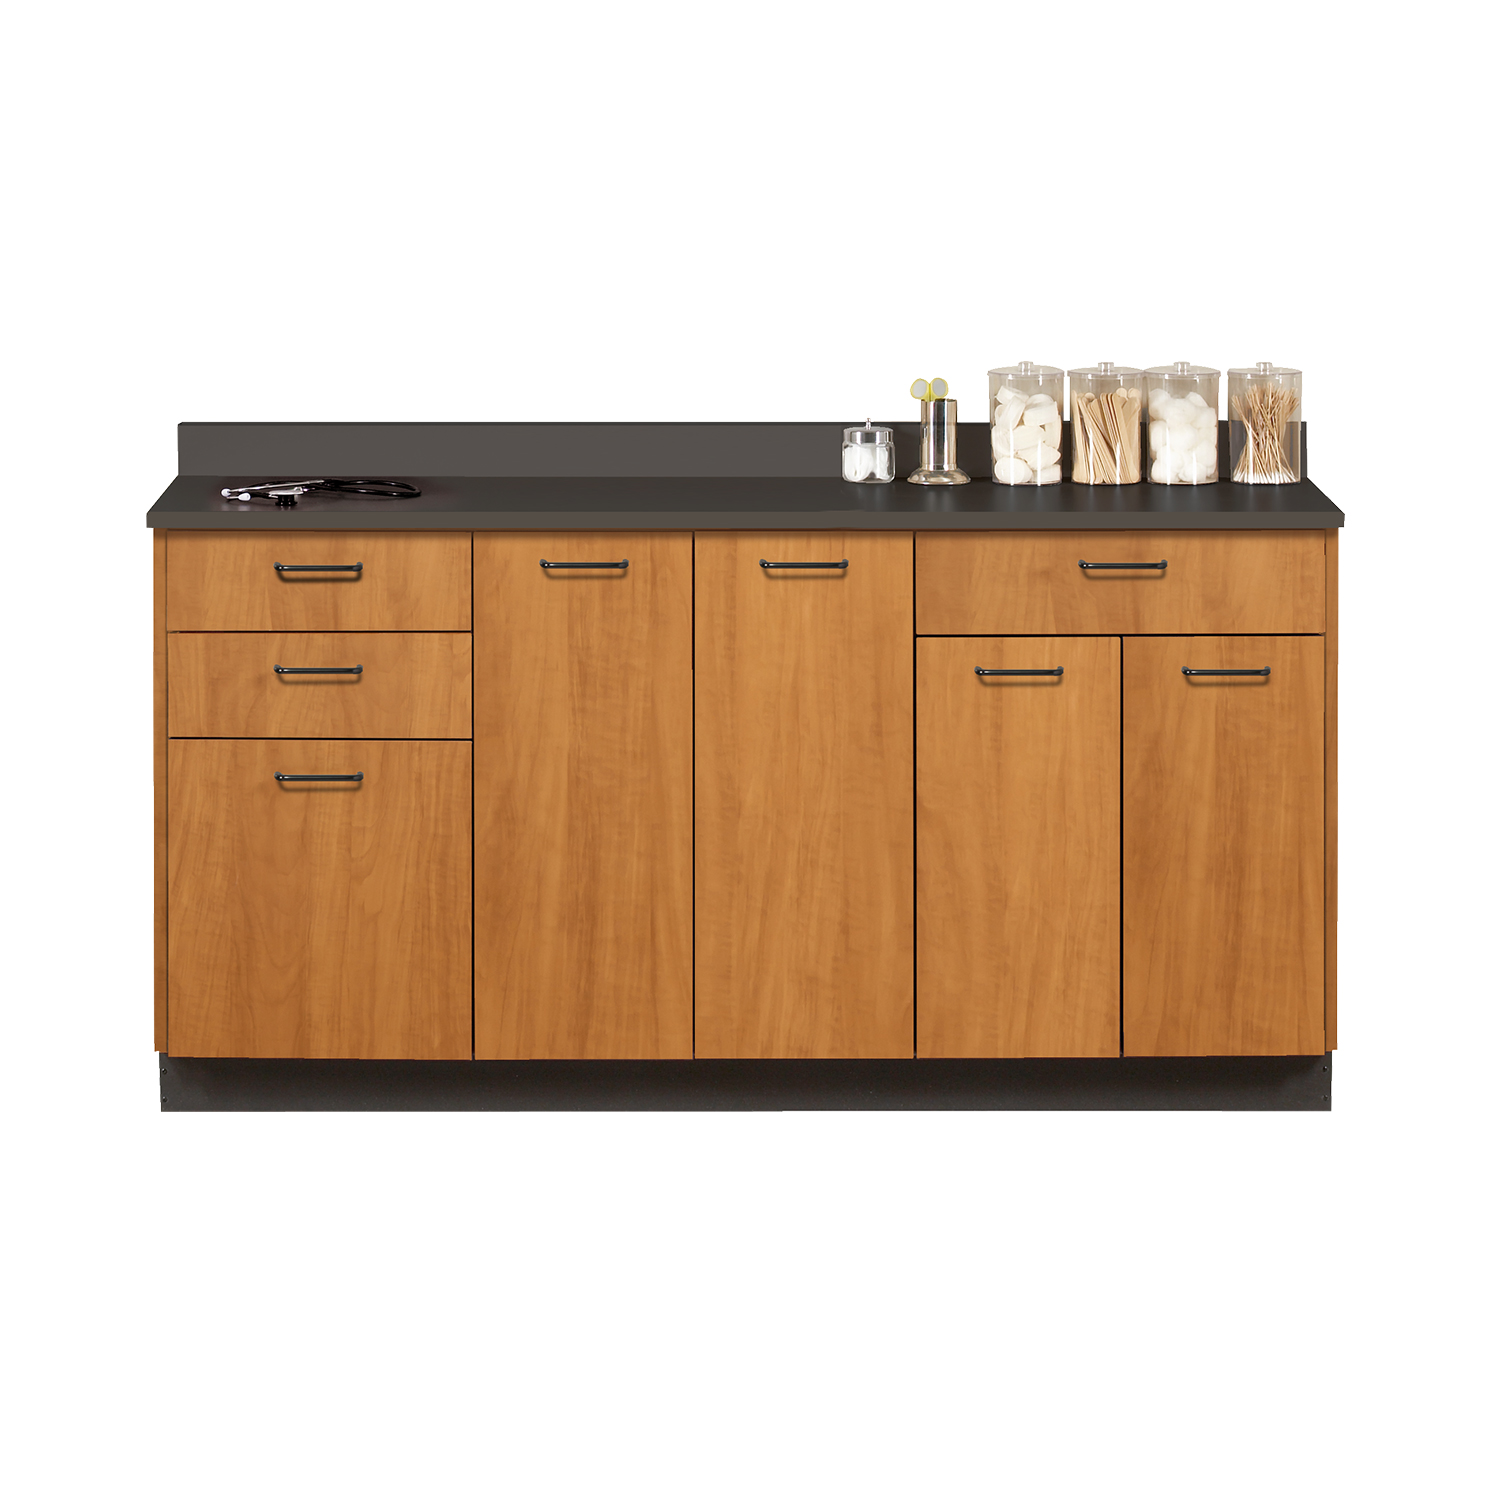 Clinton Base Cabinet with 5 Doors and 3 Drawers